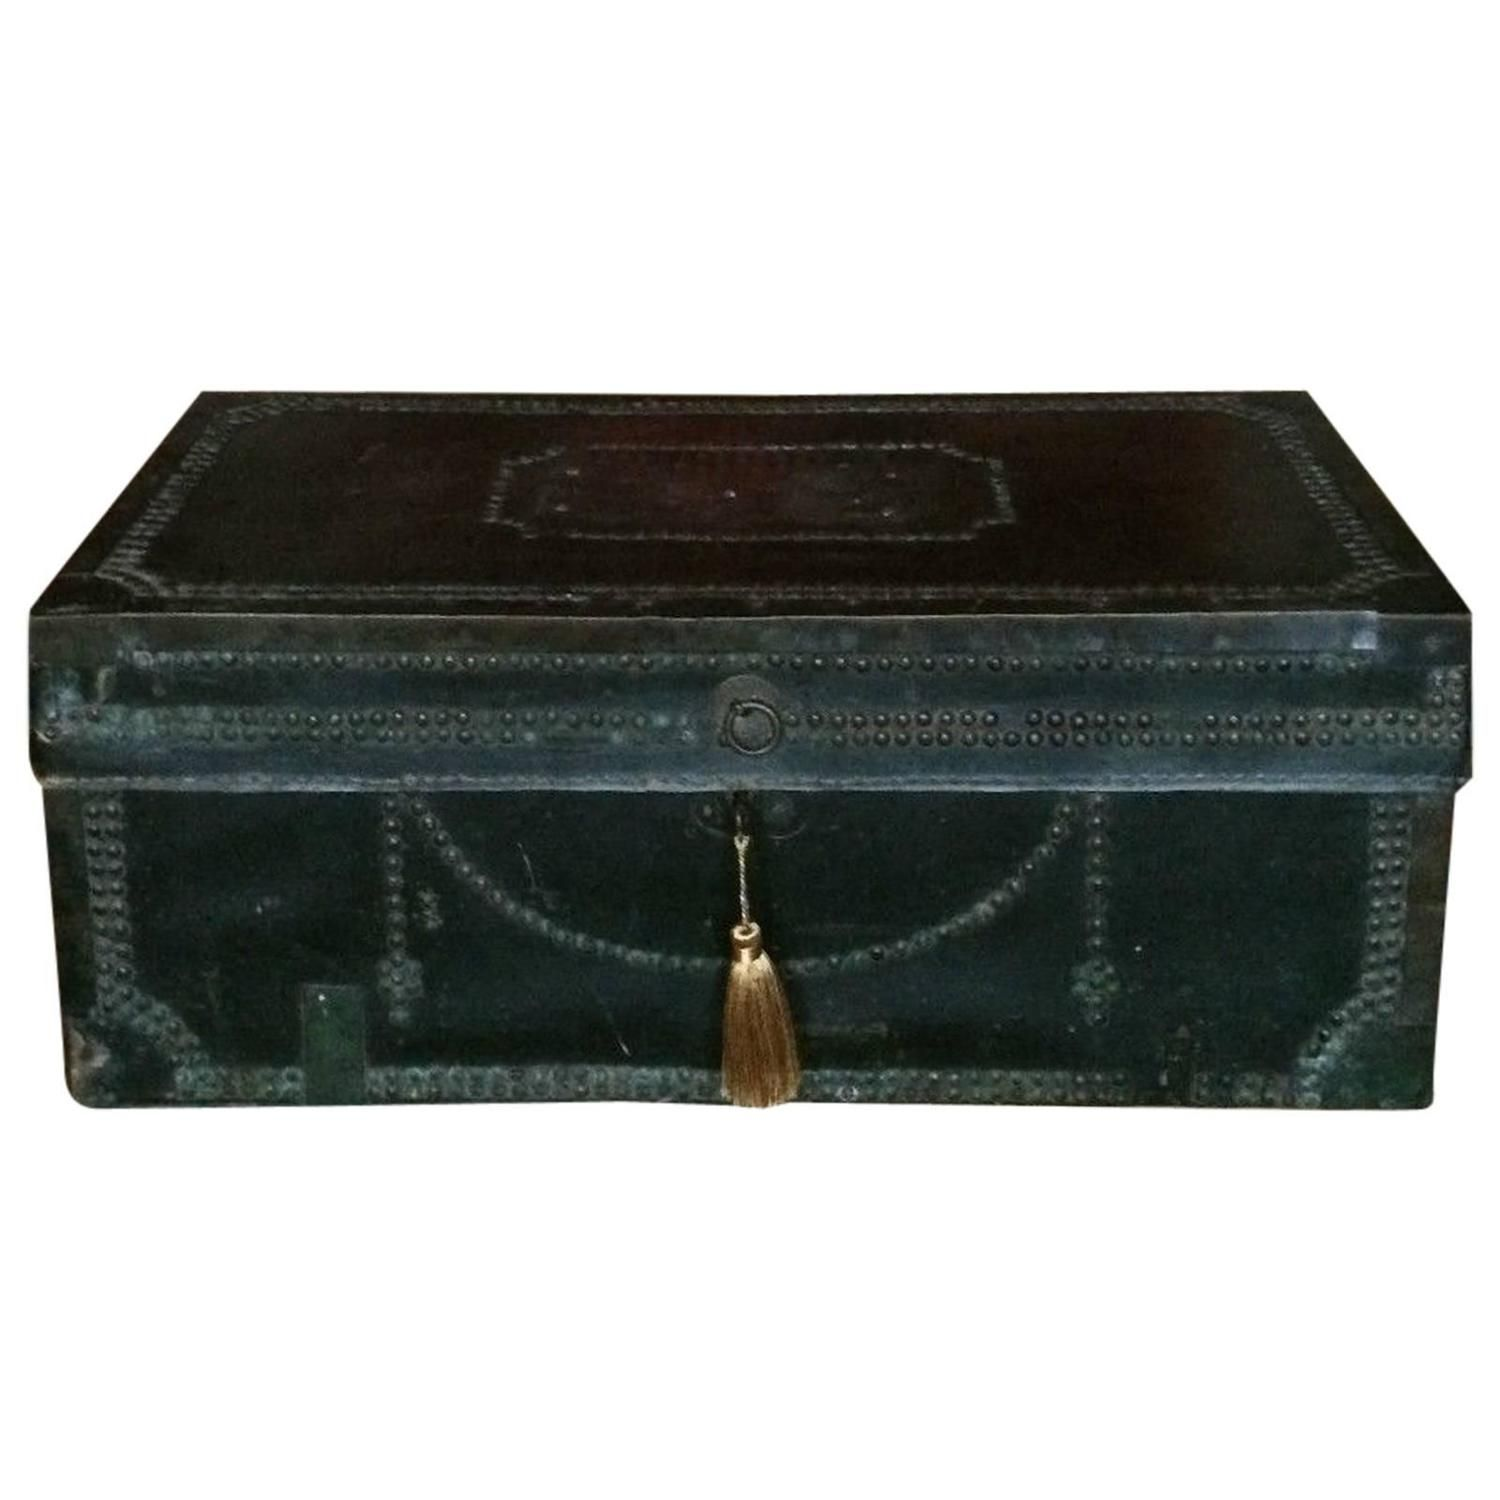 Antique Travel Trunk Chest Victorian Leather Brass Studded, 19th ...